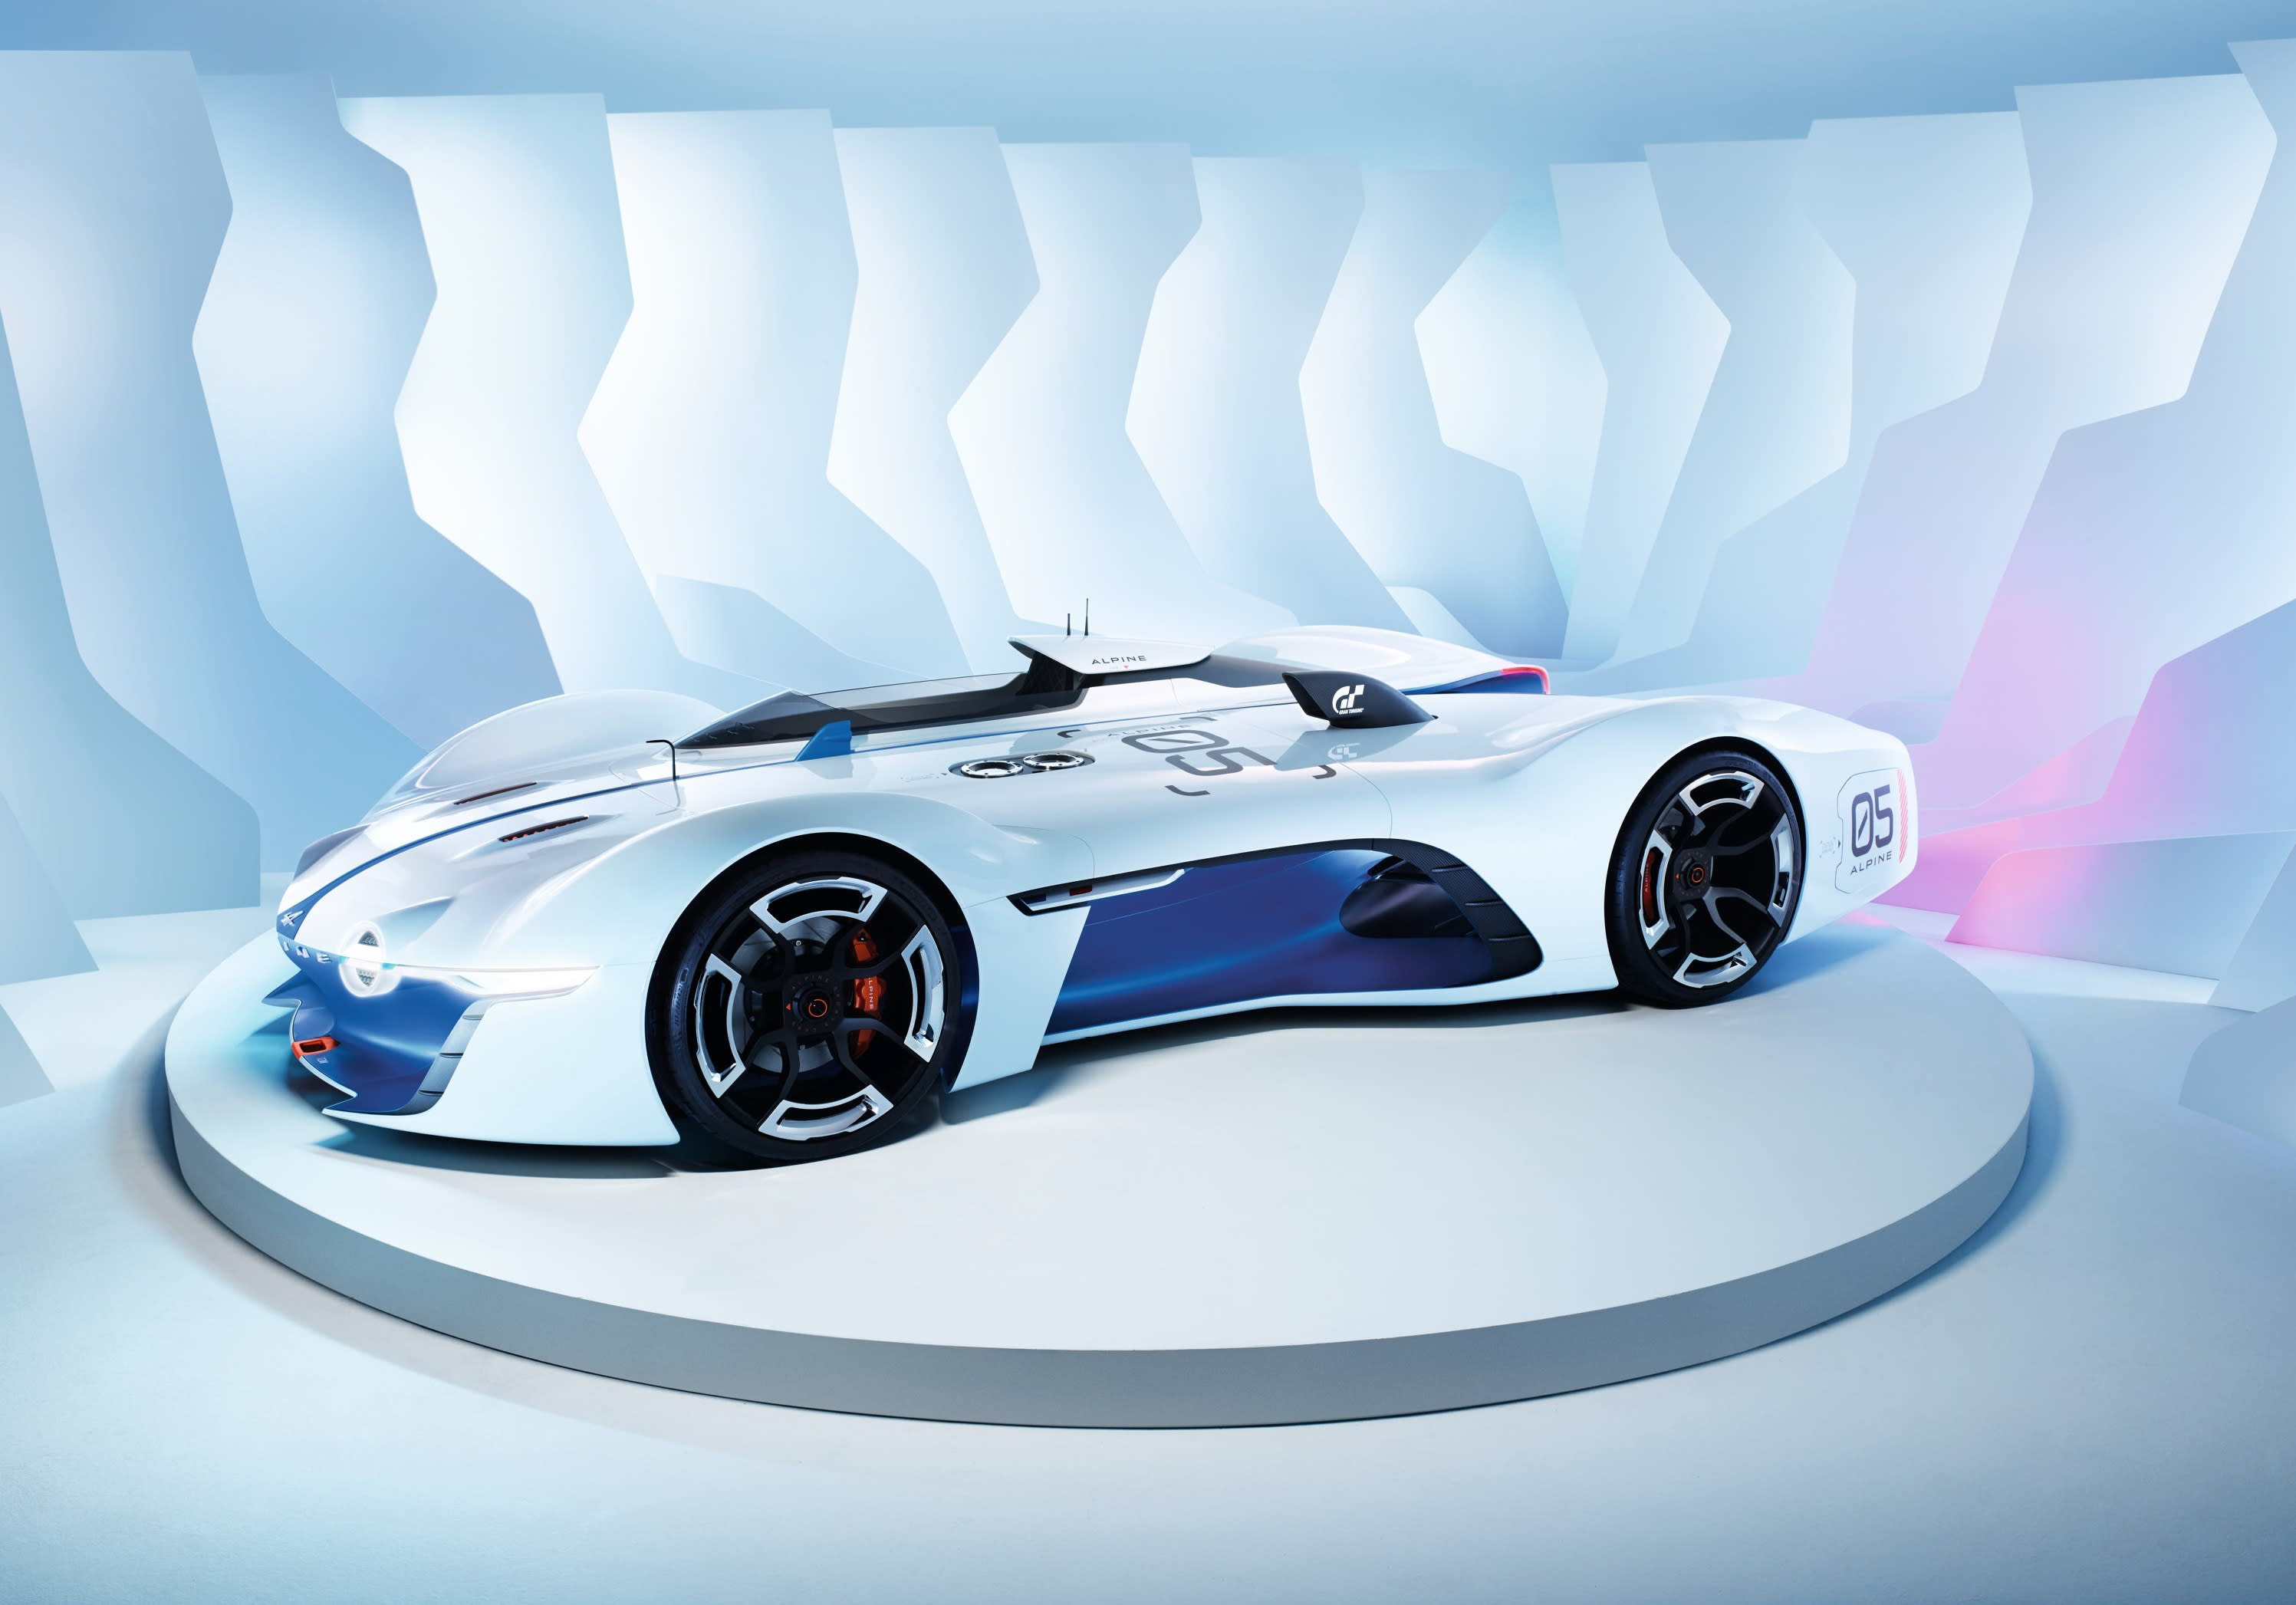 Renault-Alpine's 'Gran Turismo' race car breaks virtual cover